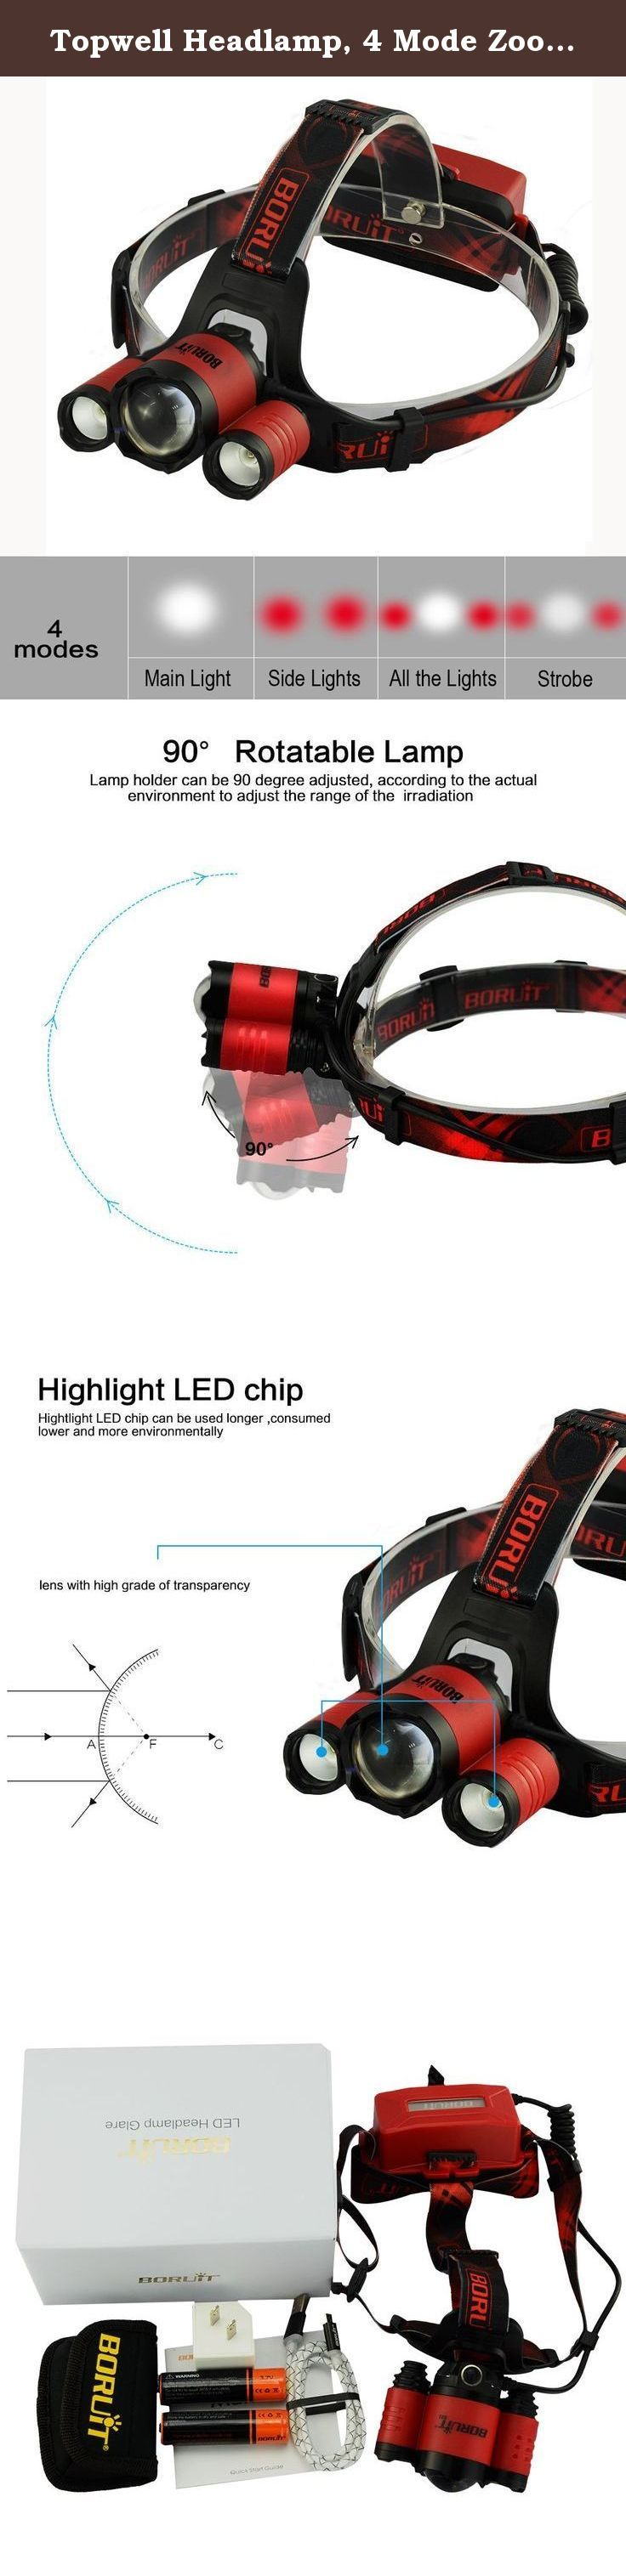 Topwell Headlamp, 4 Mode Zoomable CREE XM-L2+2 XPE(Red) HandsFree LED Headlight, 2x18650 Rechargeable Batteries with Package+USB Cable+Wall Charger for Camping Riding Fishing Hunting (Red Light). More Features: ♦ Perfect for outdoor activities like running, hiking, hunting, camping, fishing, etc or indoor working. ♦ Sides Red LED -- vital for getting the best eyesight when you are without losing your 'night vision'. ♦ This ultra bright headlight has 4 light switch modes: CREE-XML-L2 (Main...